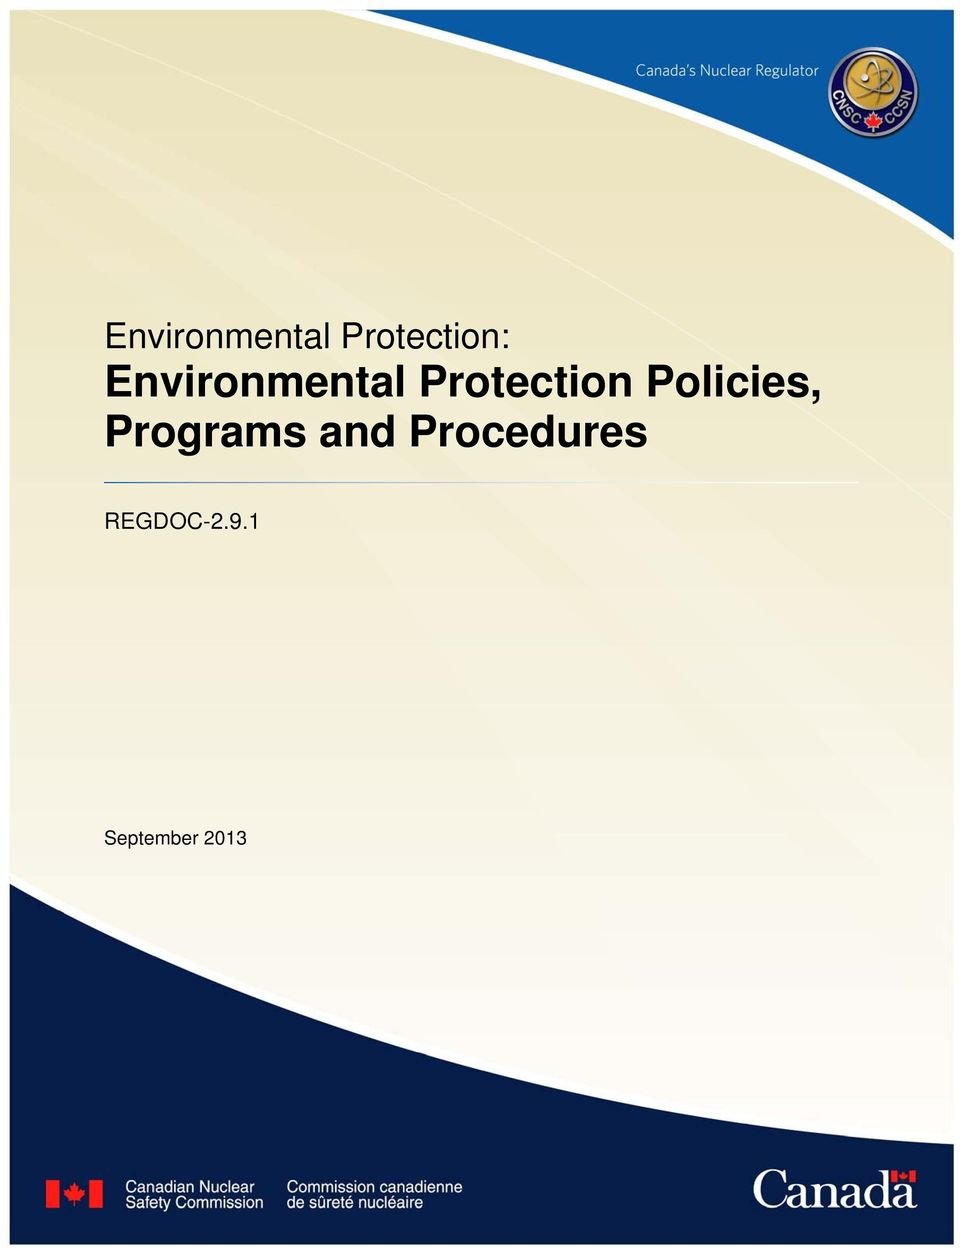 Policies, Programs and